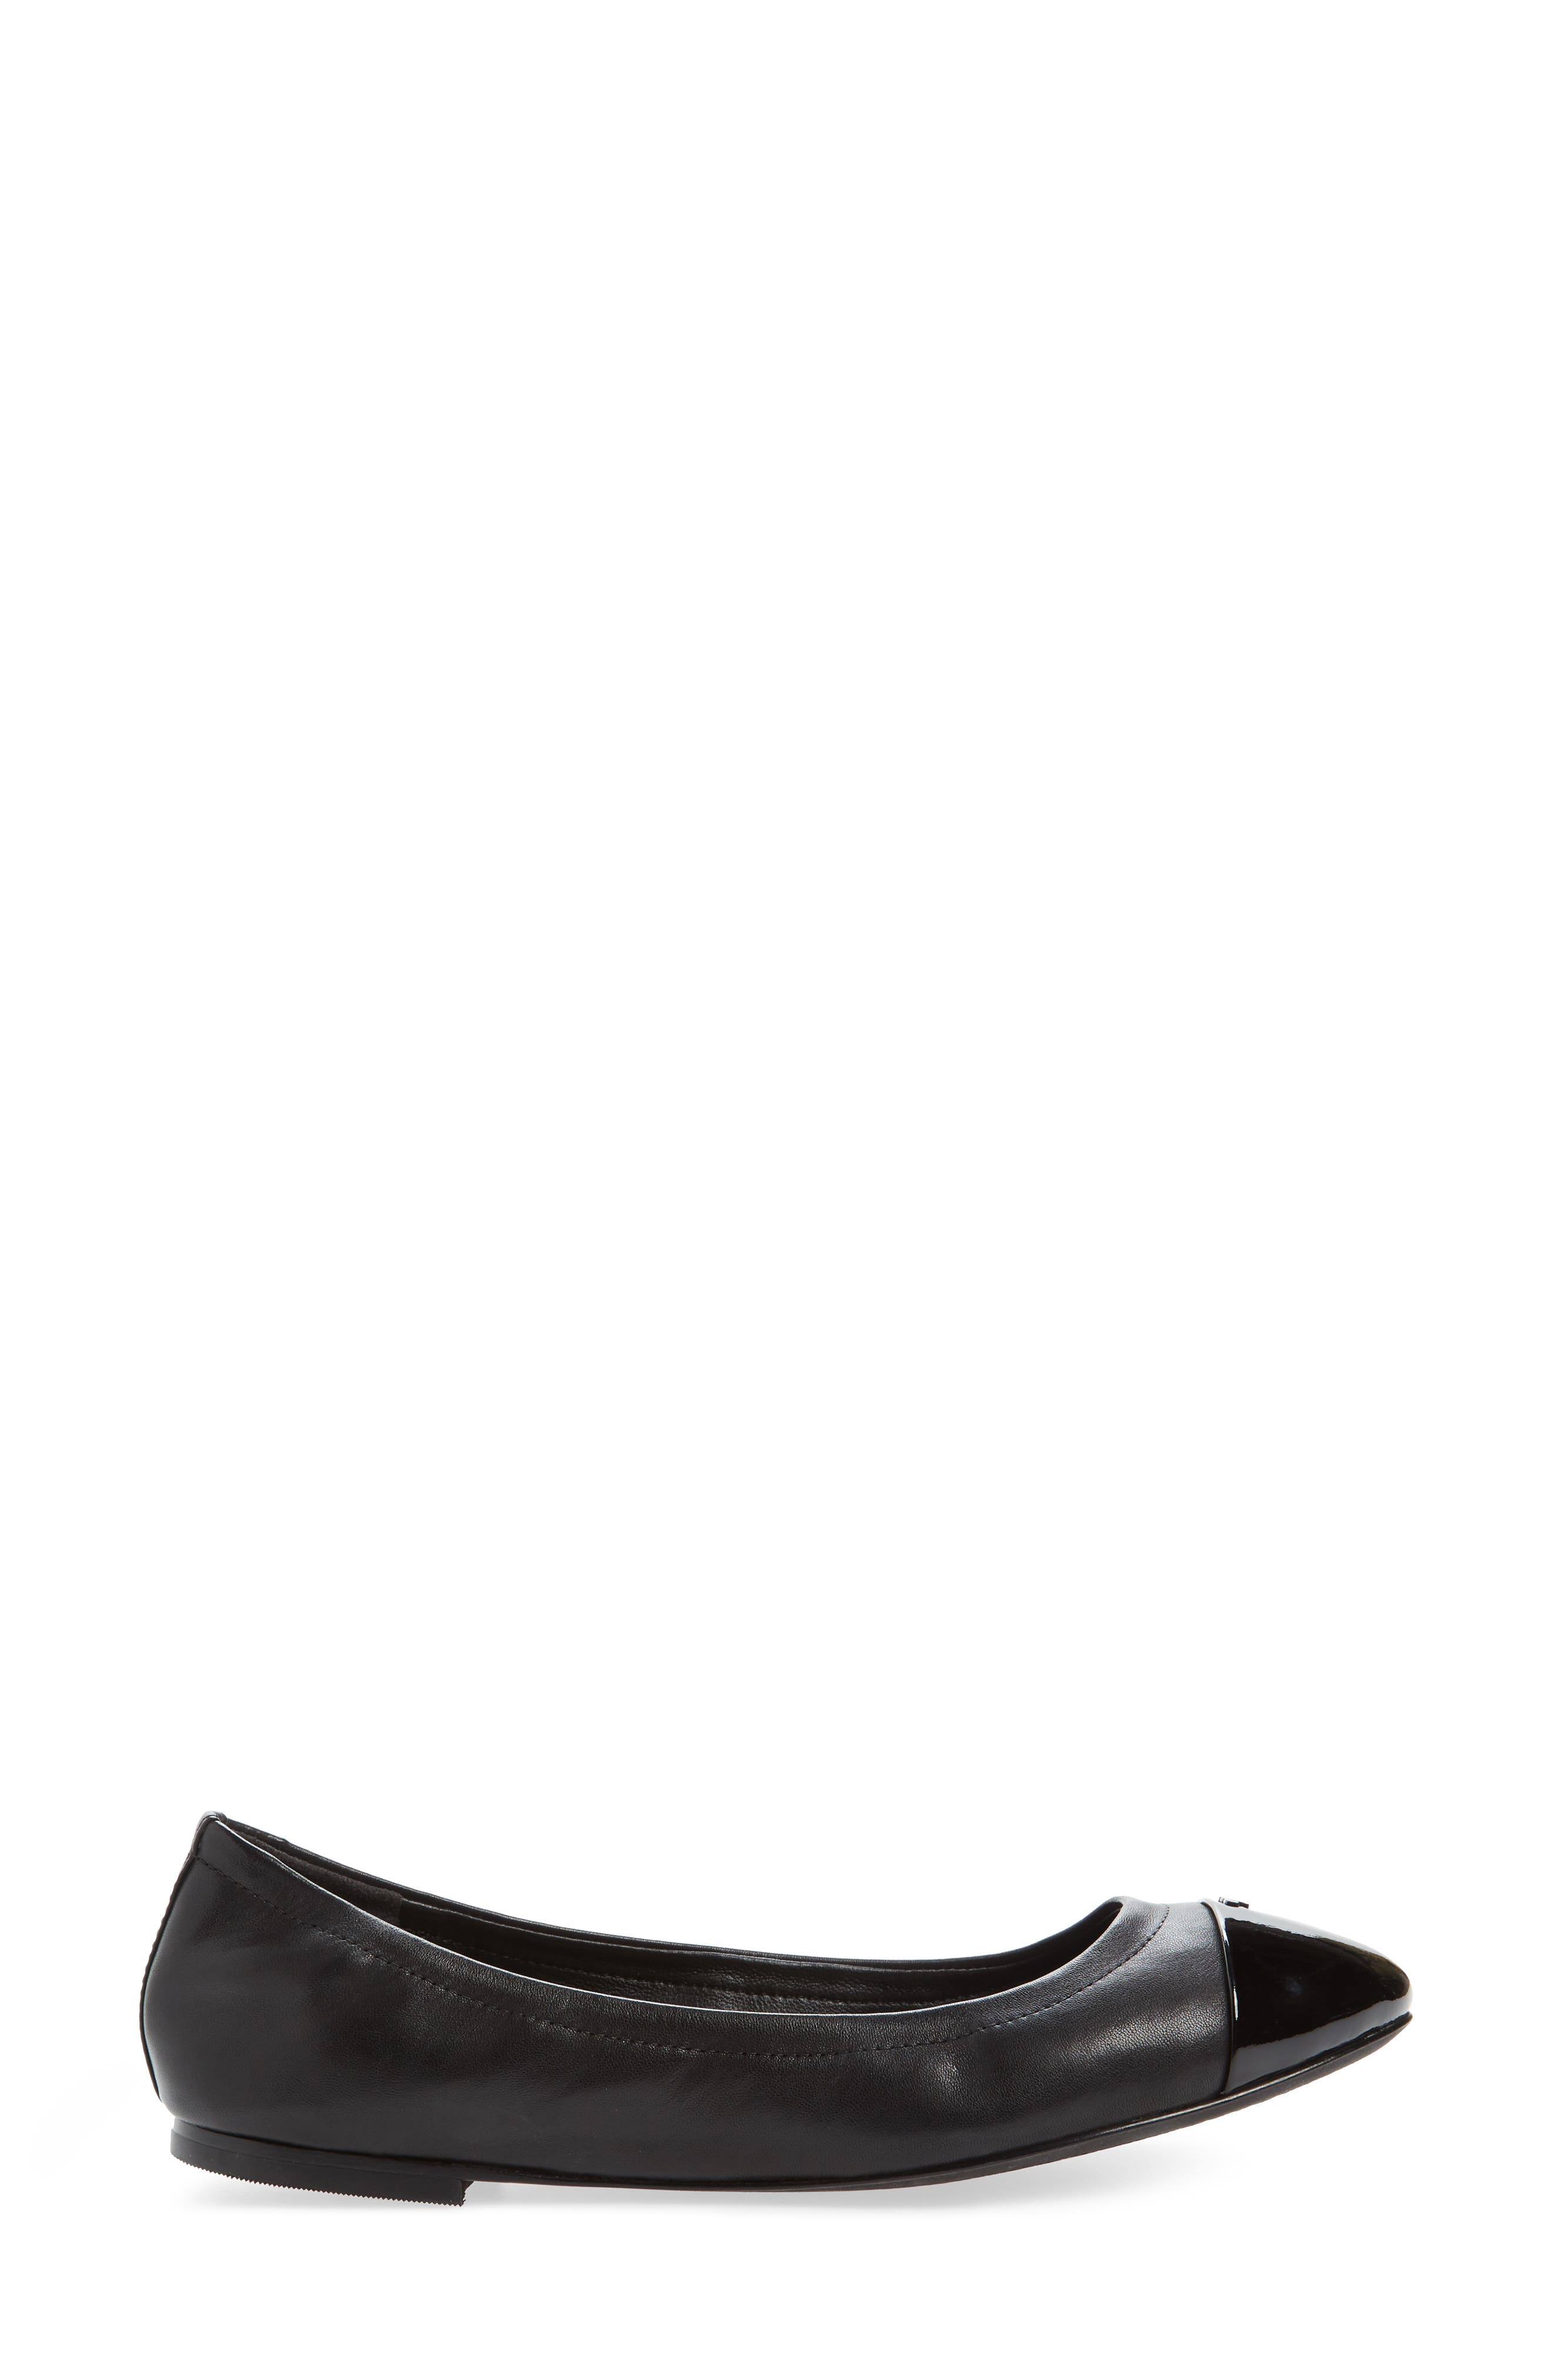 Alternate Image 3  - Tory Burch Shelby Cap Toe Ballet Flat (Women)